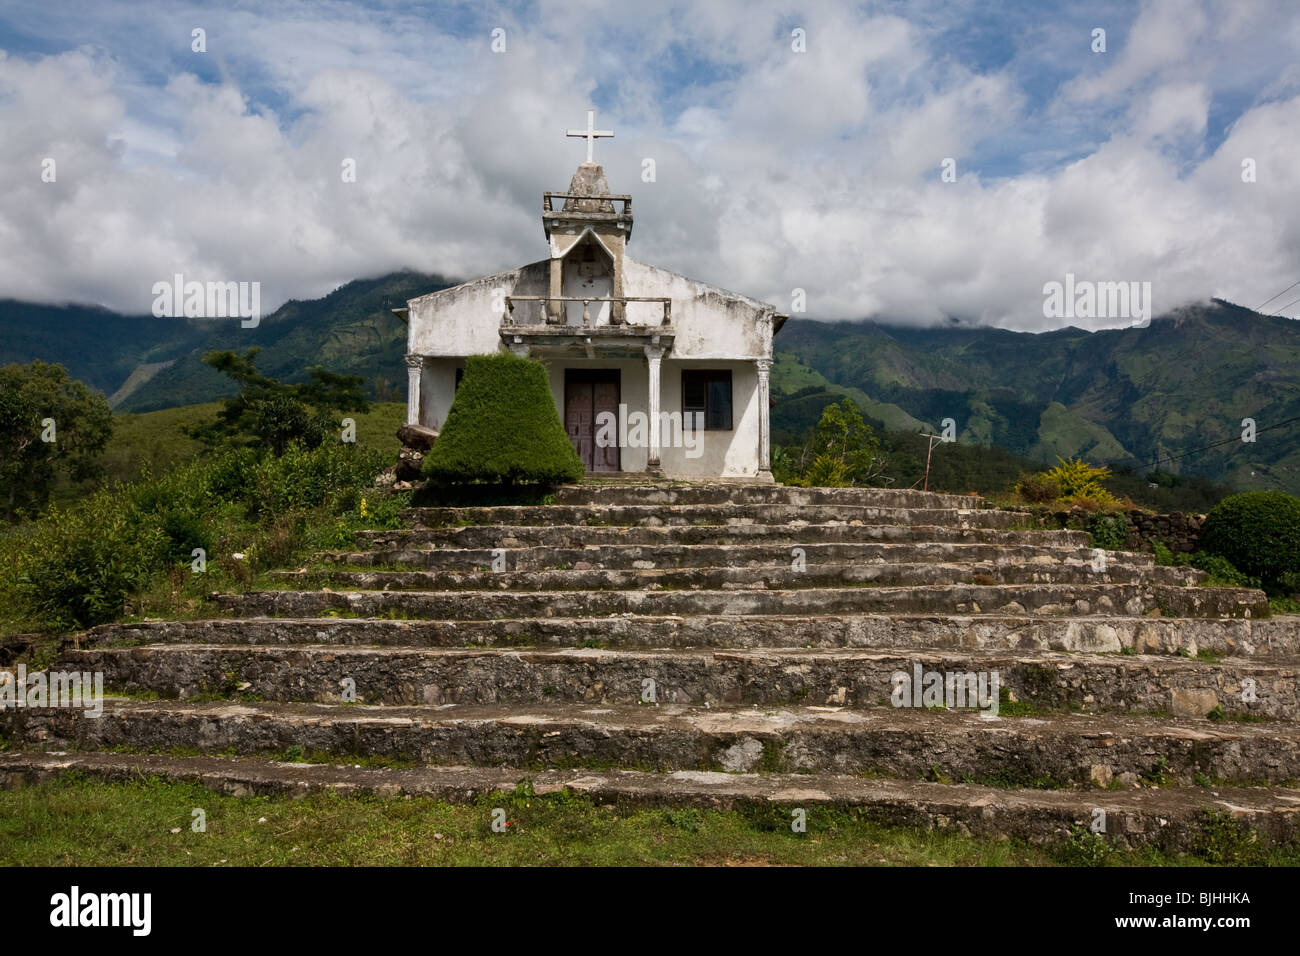 Small church. Near Maubisse, East Timor. - Stock Image